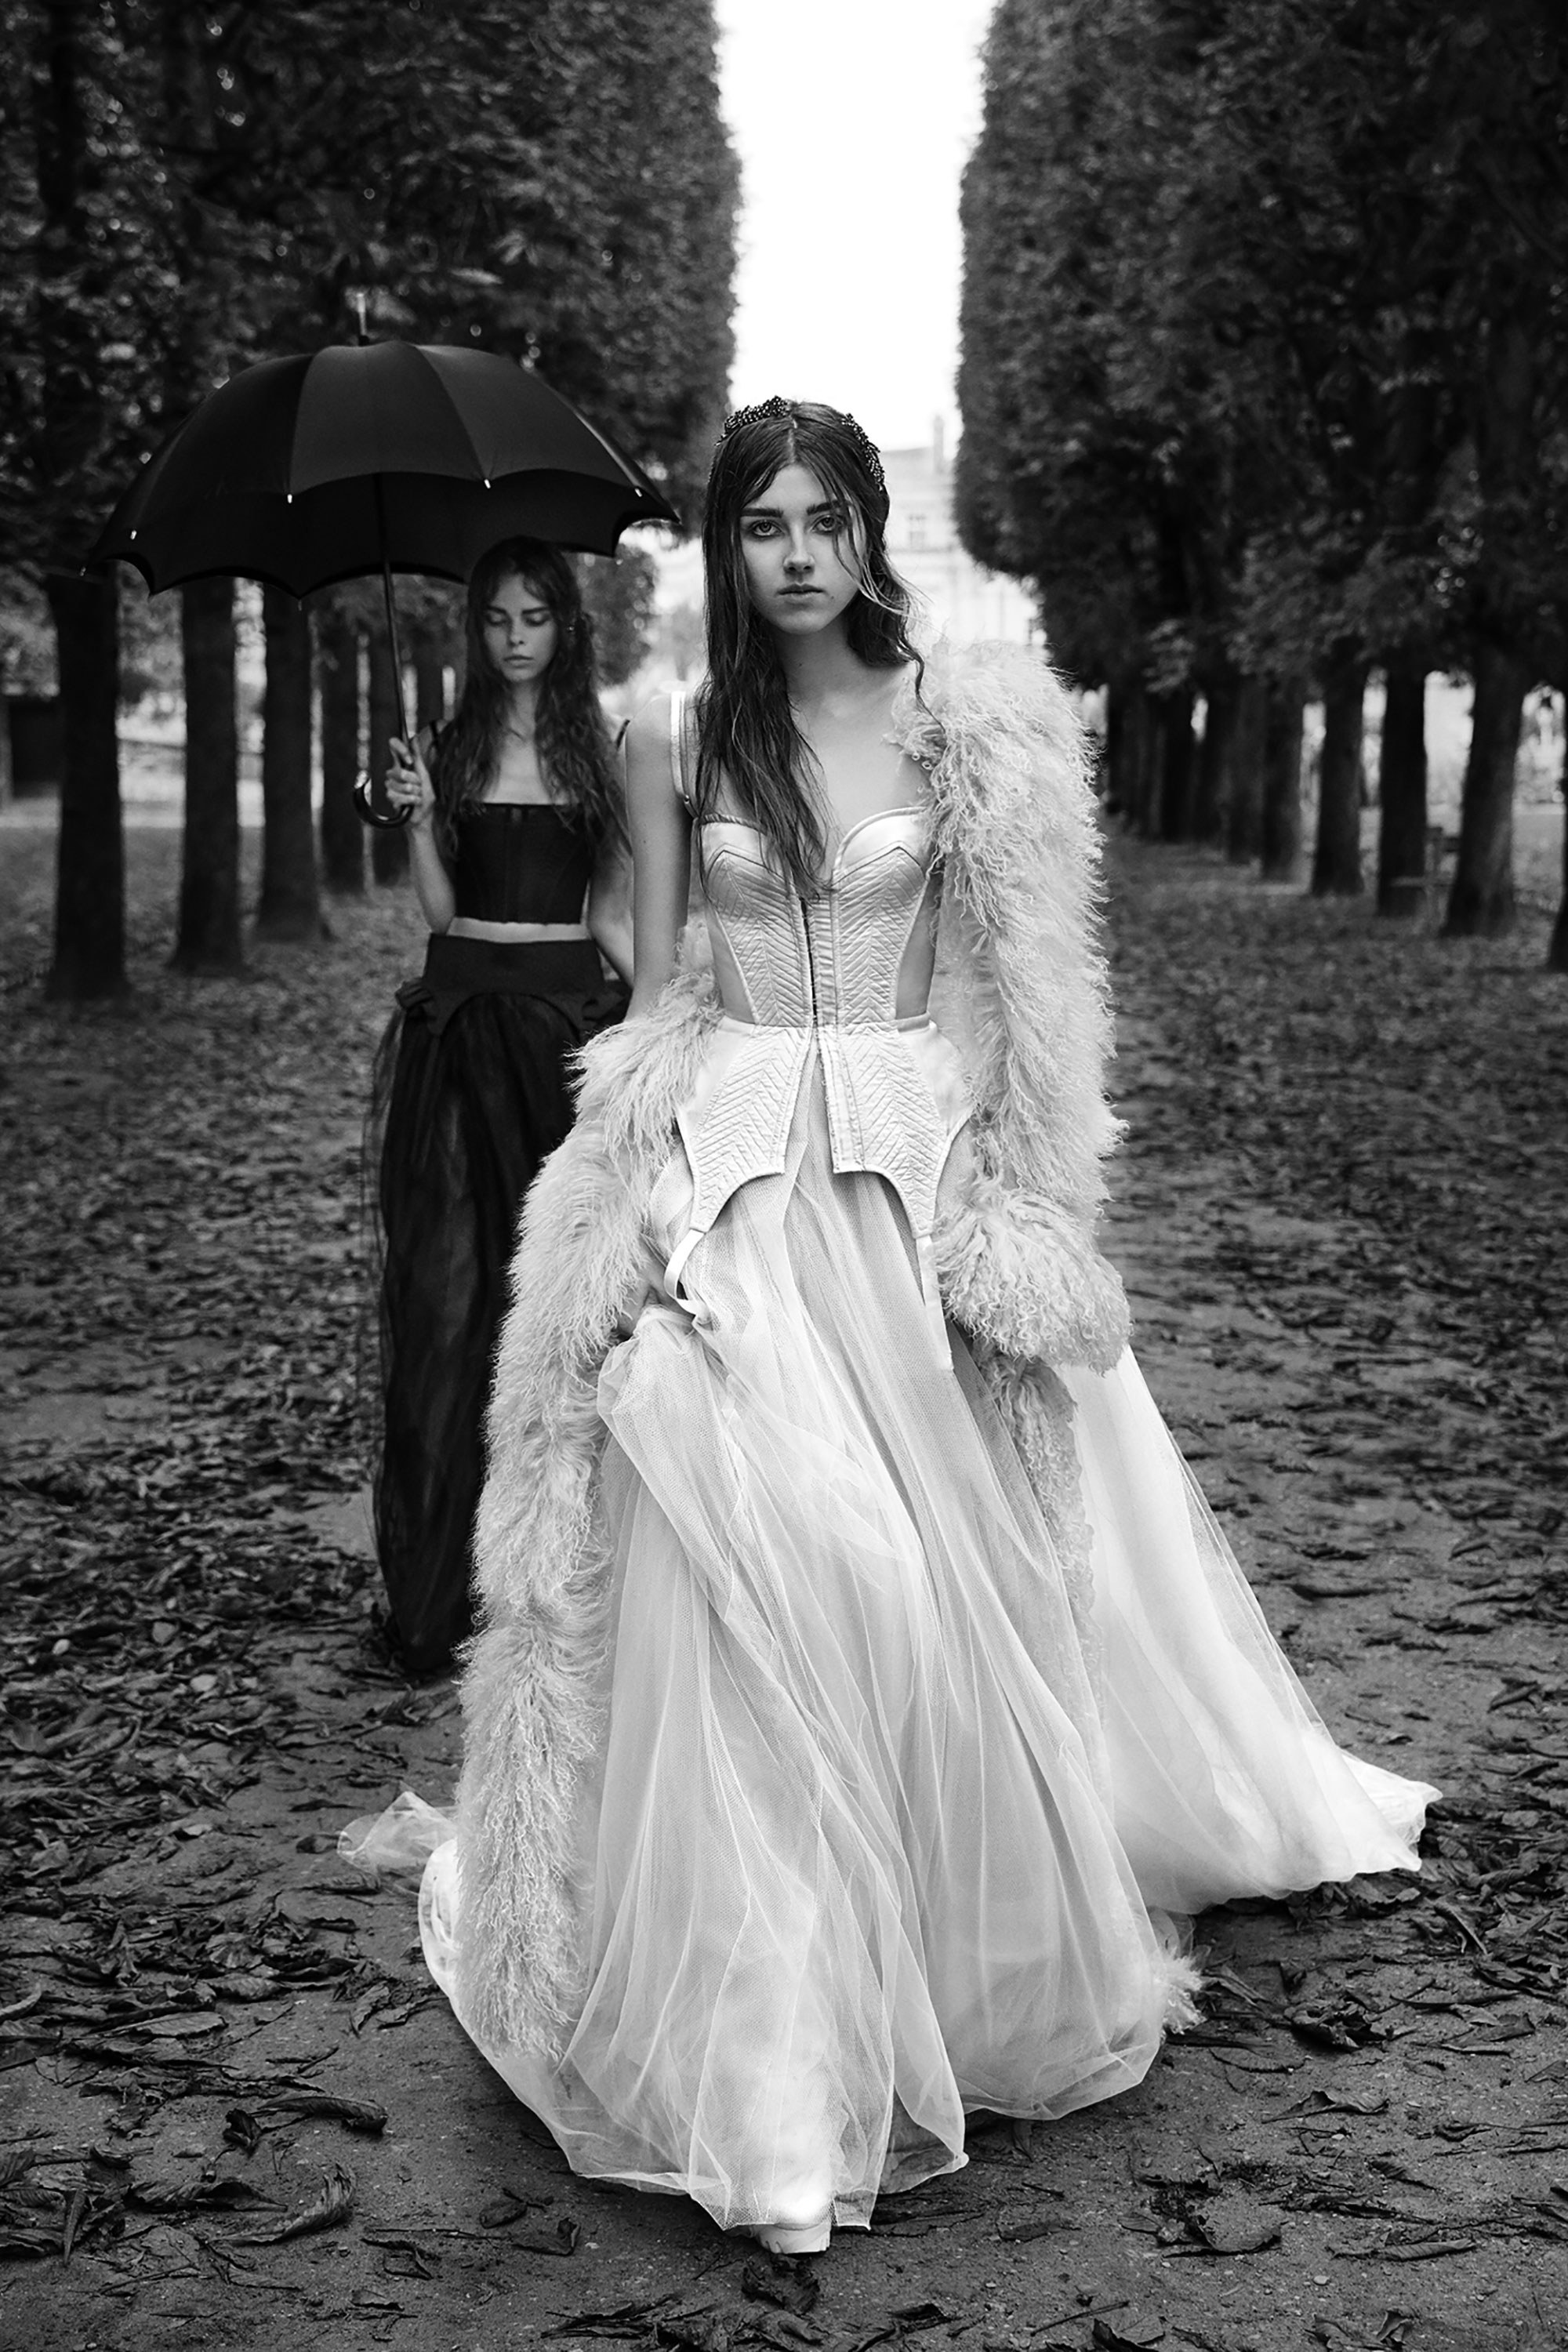 ecedd82630e9 ... Vera Wang Bridal Fall 2018. 2018 Collections, Bridal Fashion, Runway, Wedding  Dresses